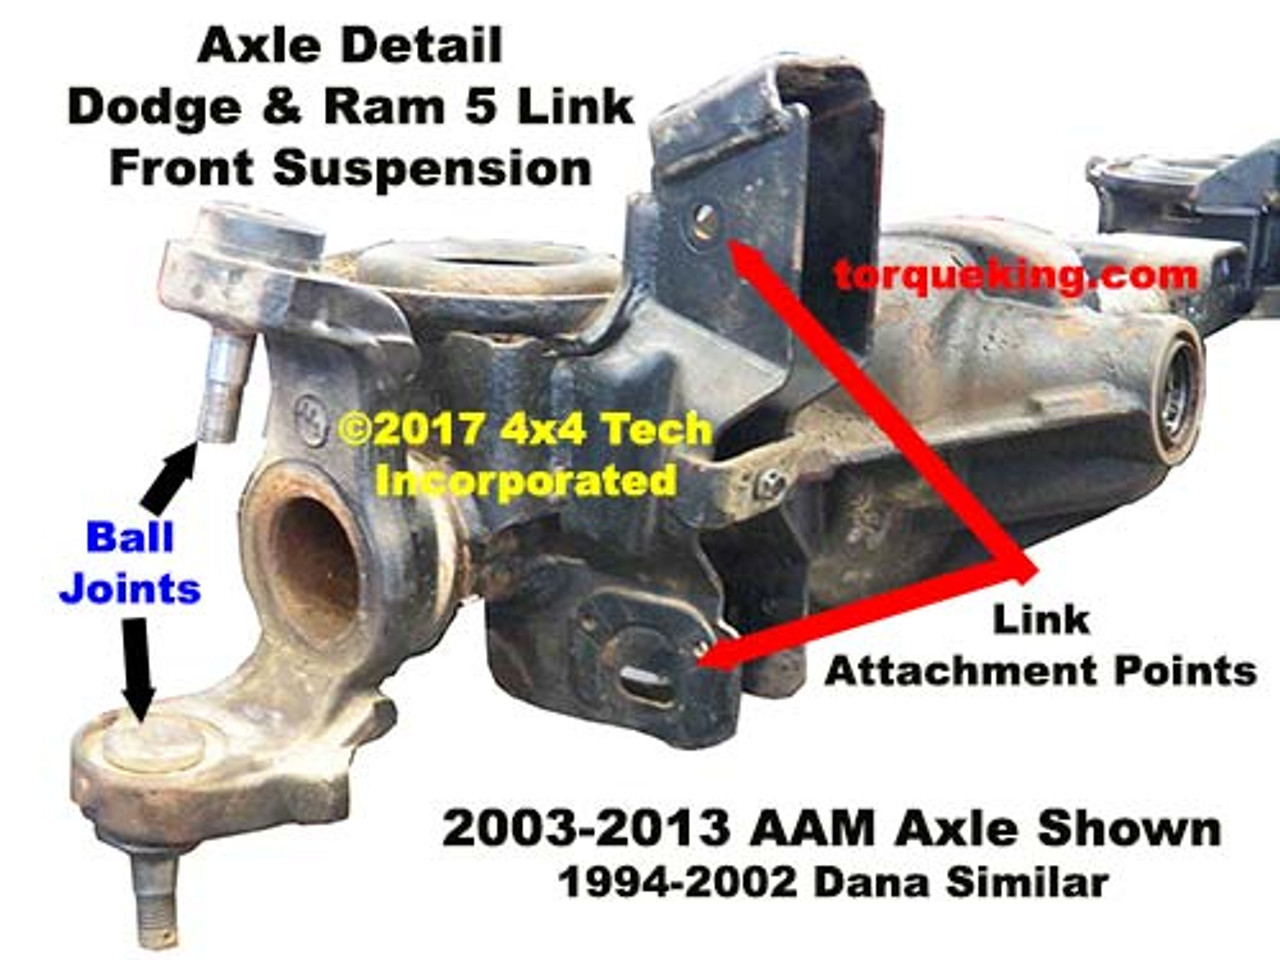 Dodge Aam Left Axle Beam Detail on 1994 Chevy Front Differential Diagram